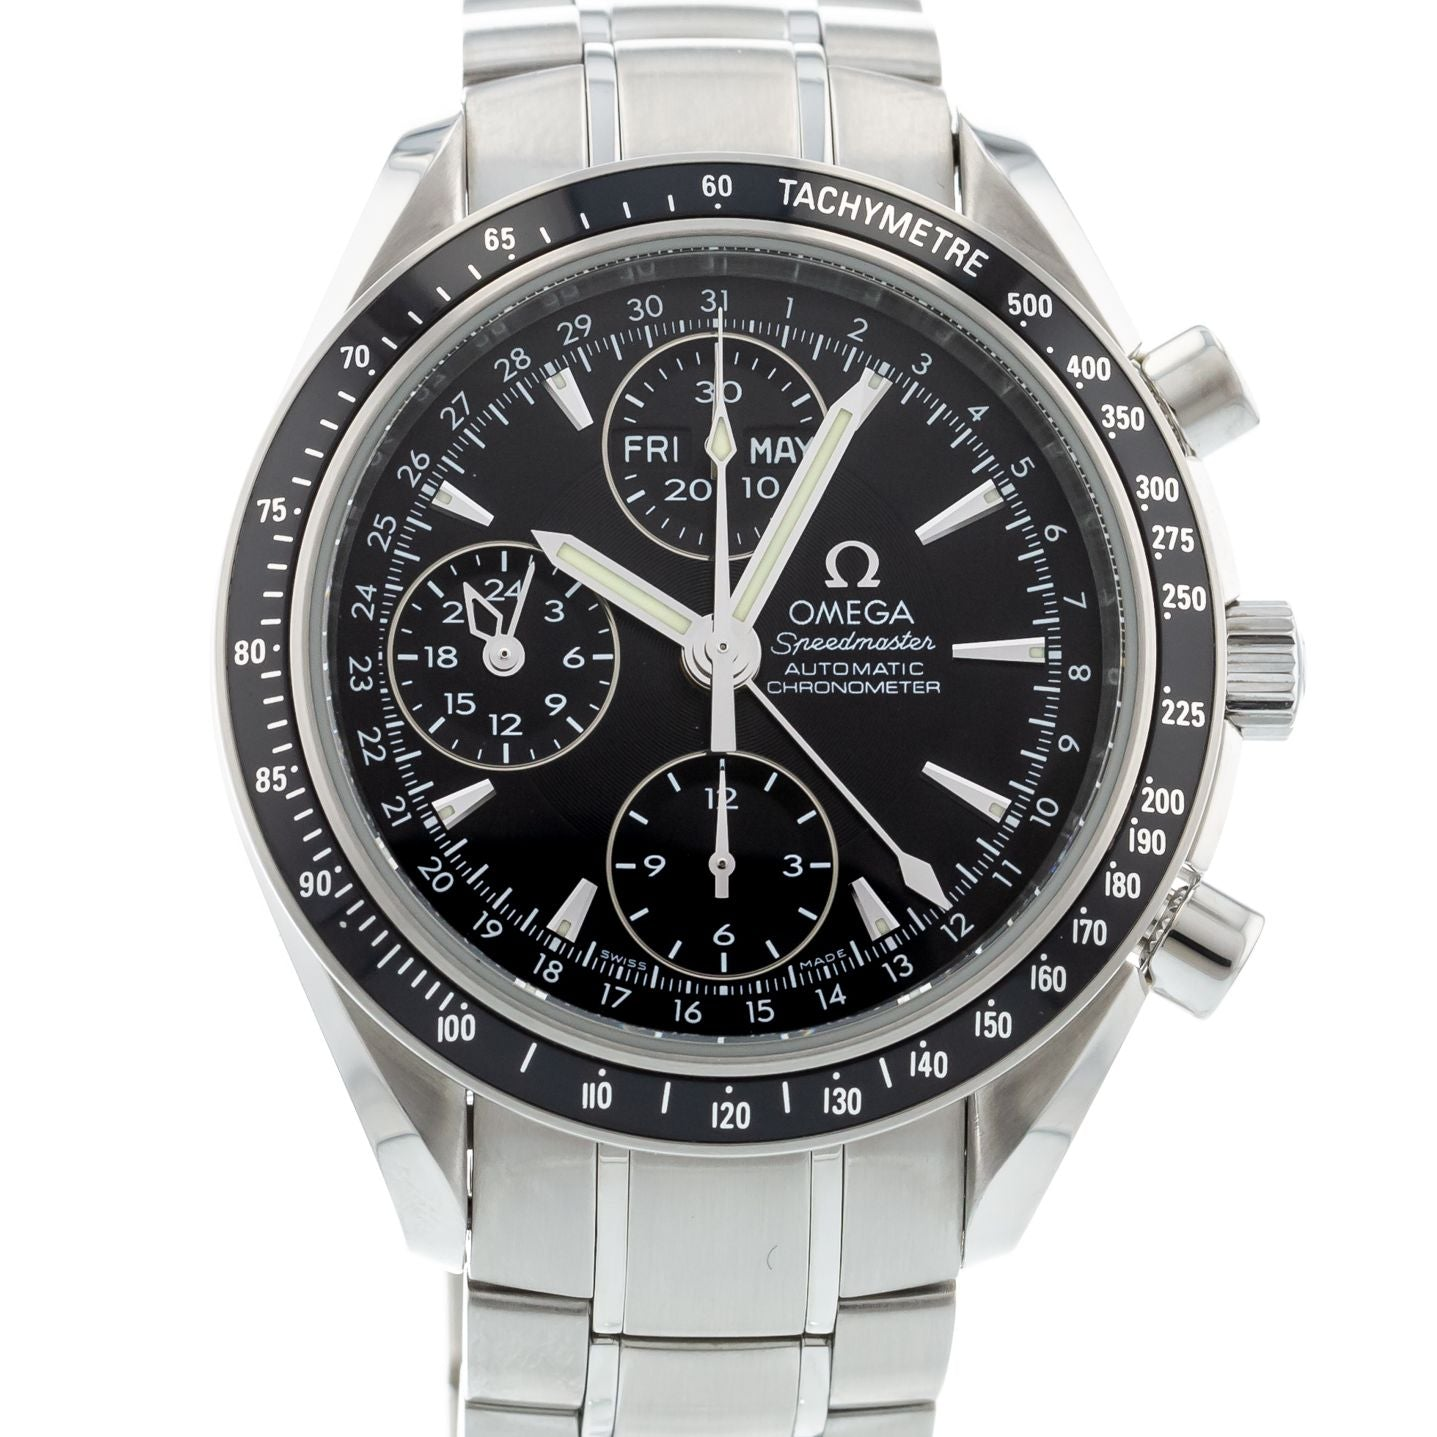 d5dd98462 Authentic Used OMEGA Speedmaster Day-Date 3220.50.00 Watch (10-10 ...